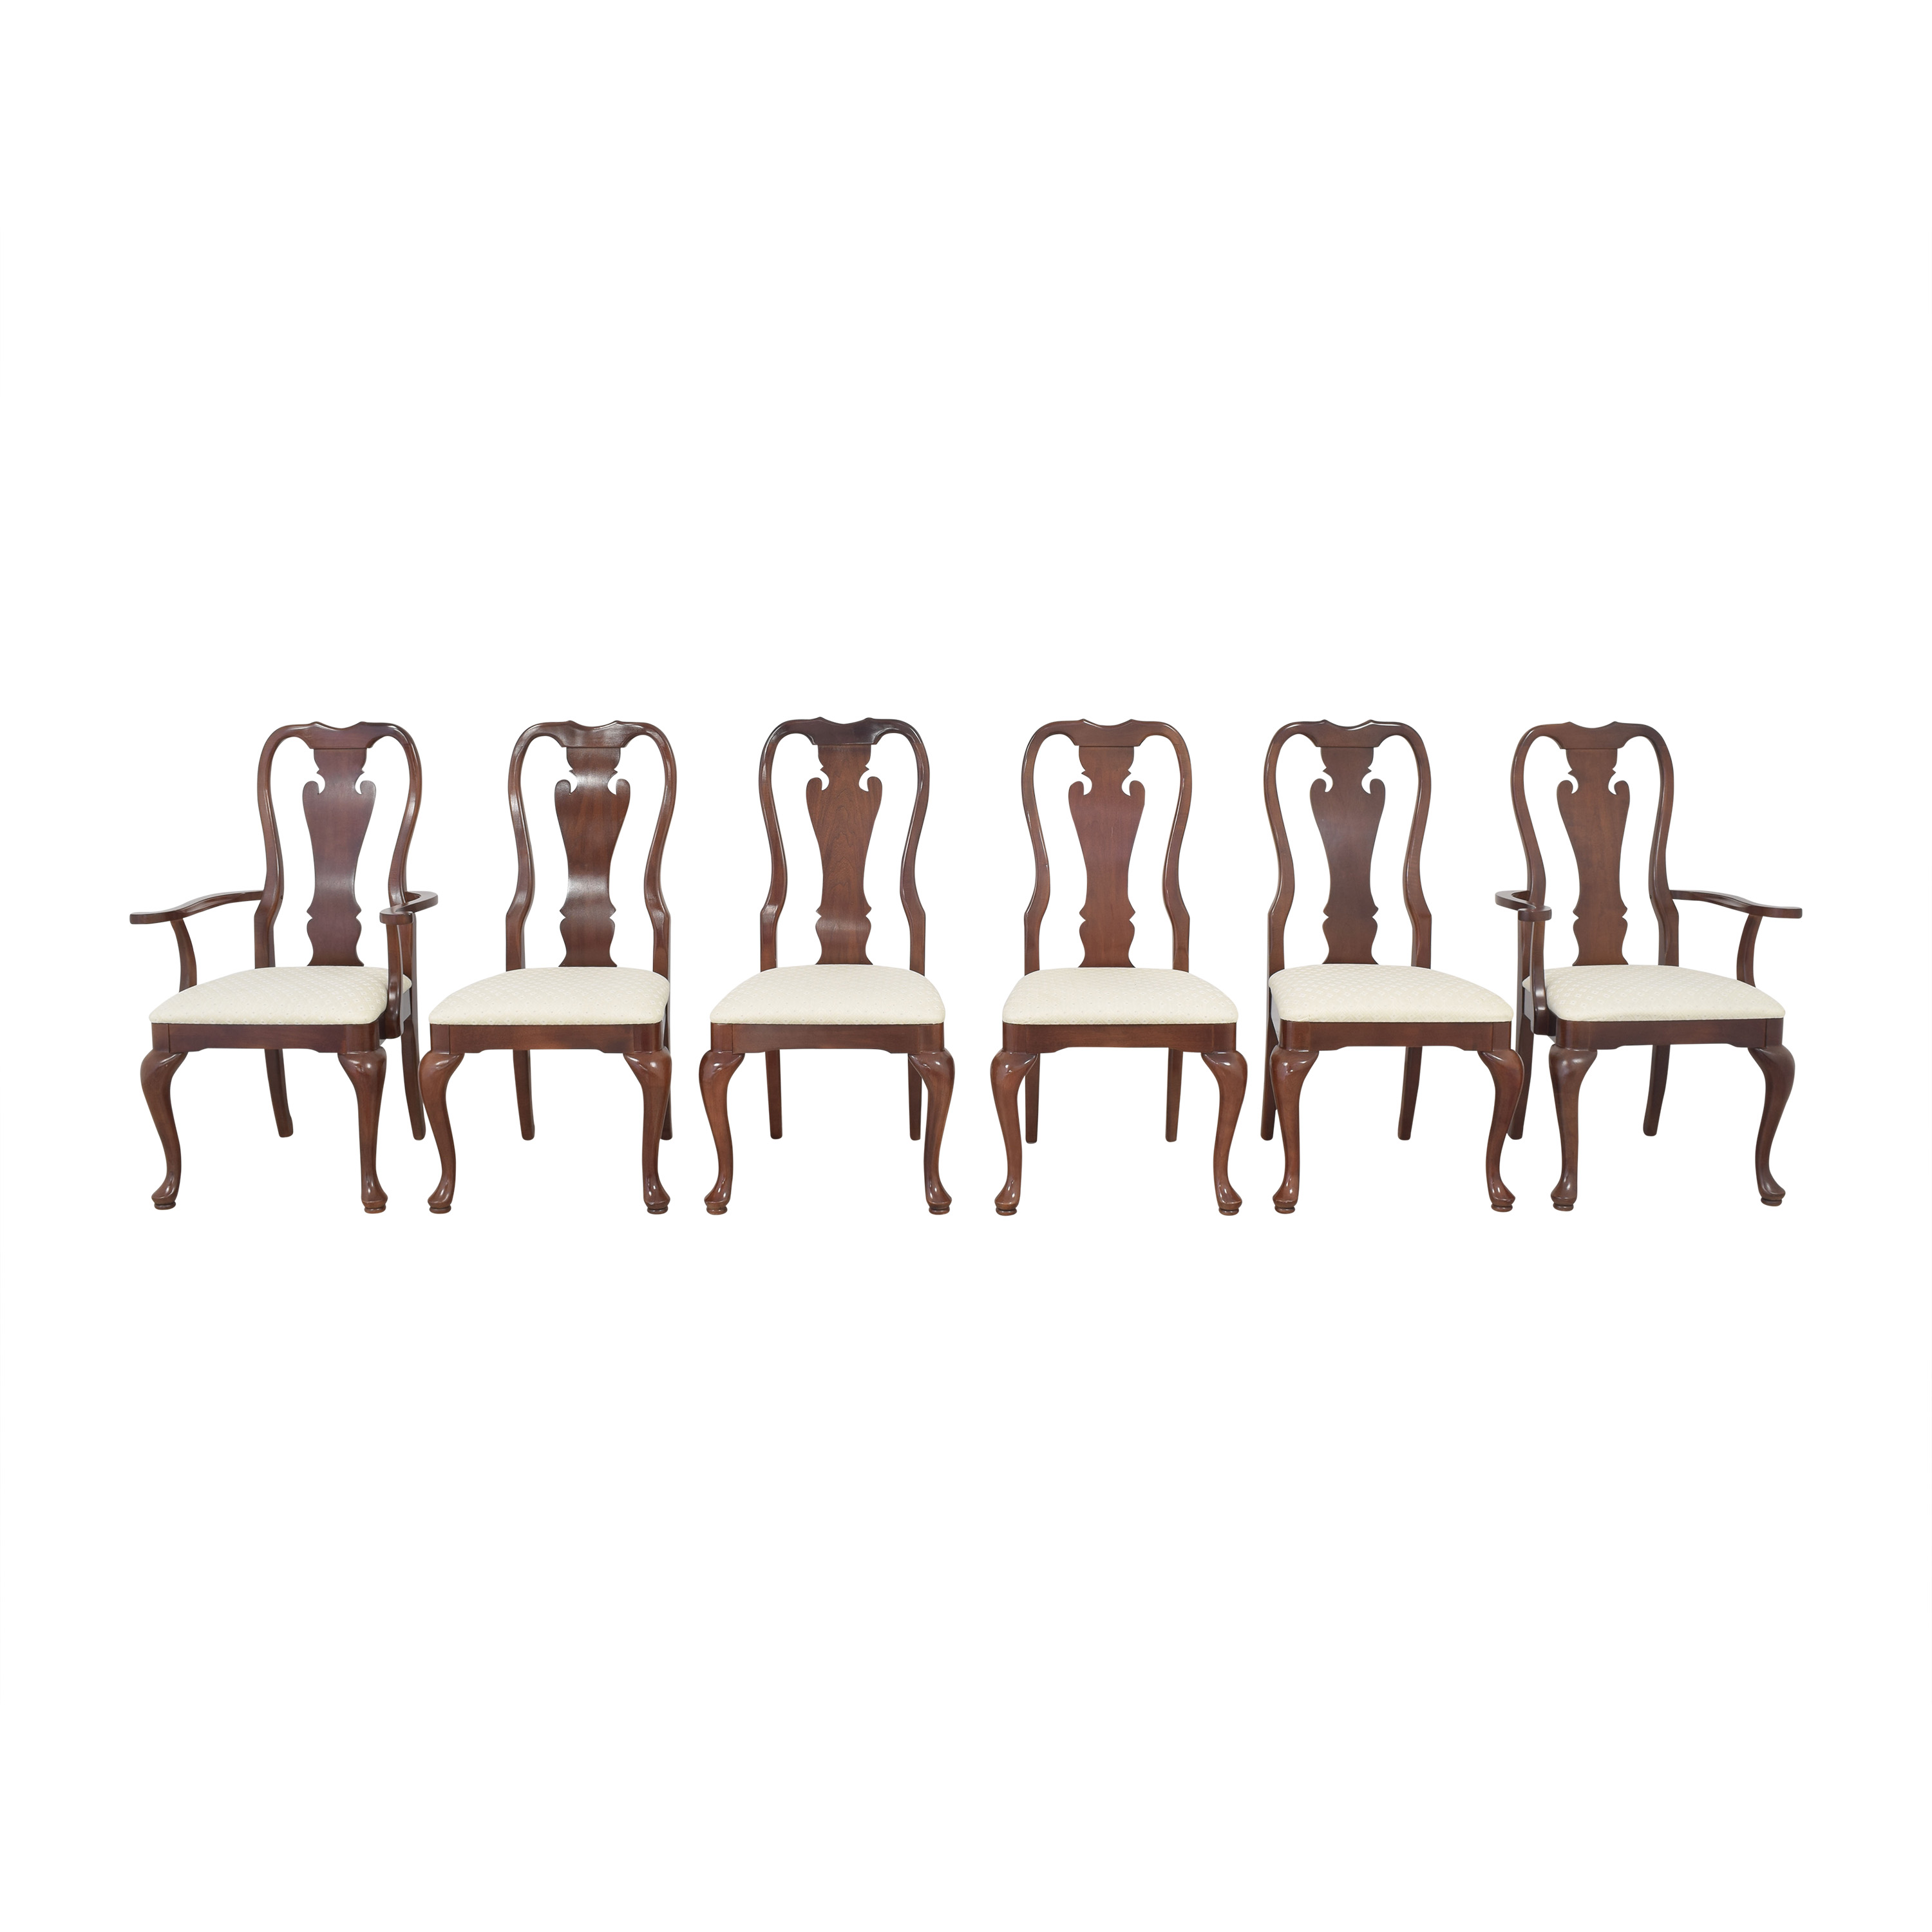 Thomasville Thomasville Queen Anne Dining Chairs nj